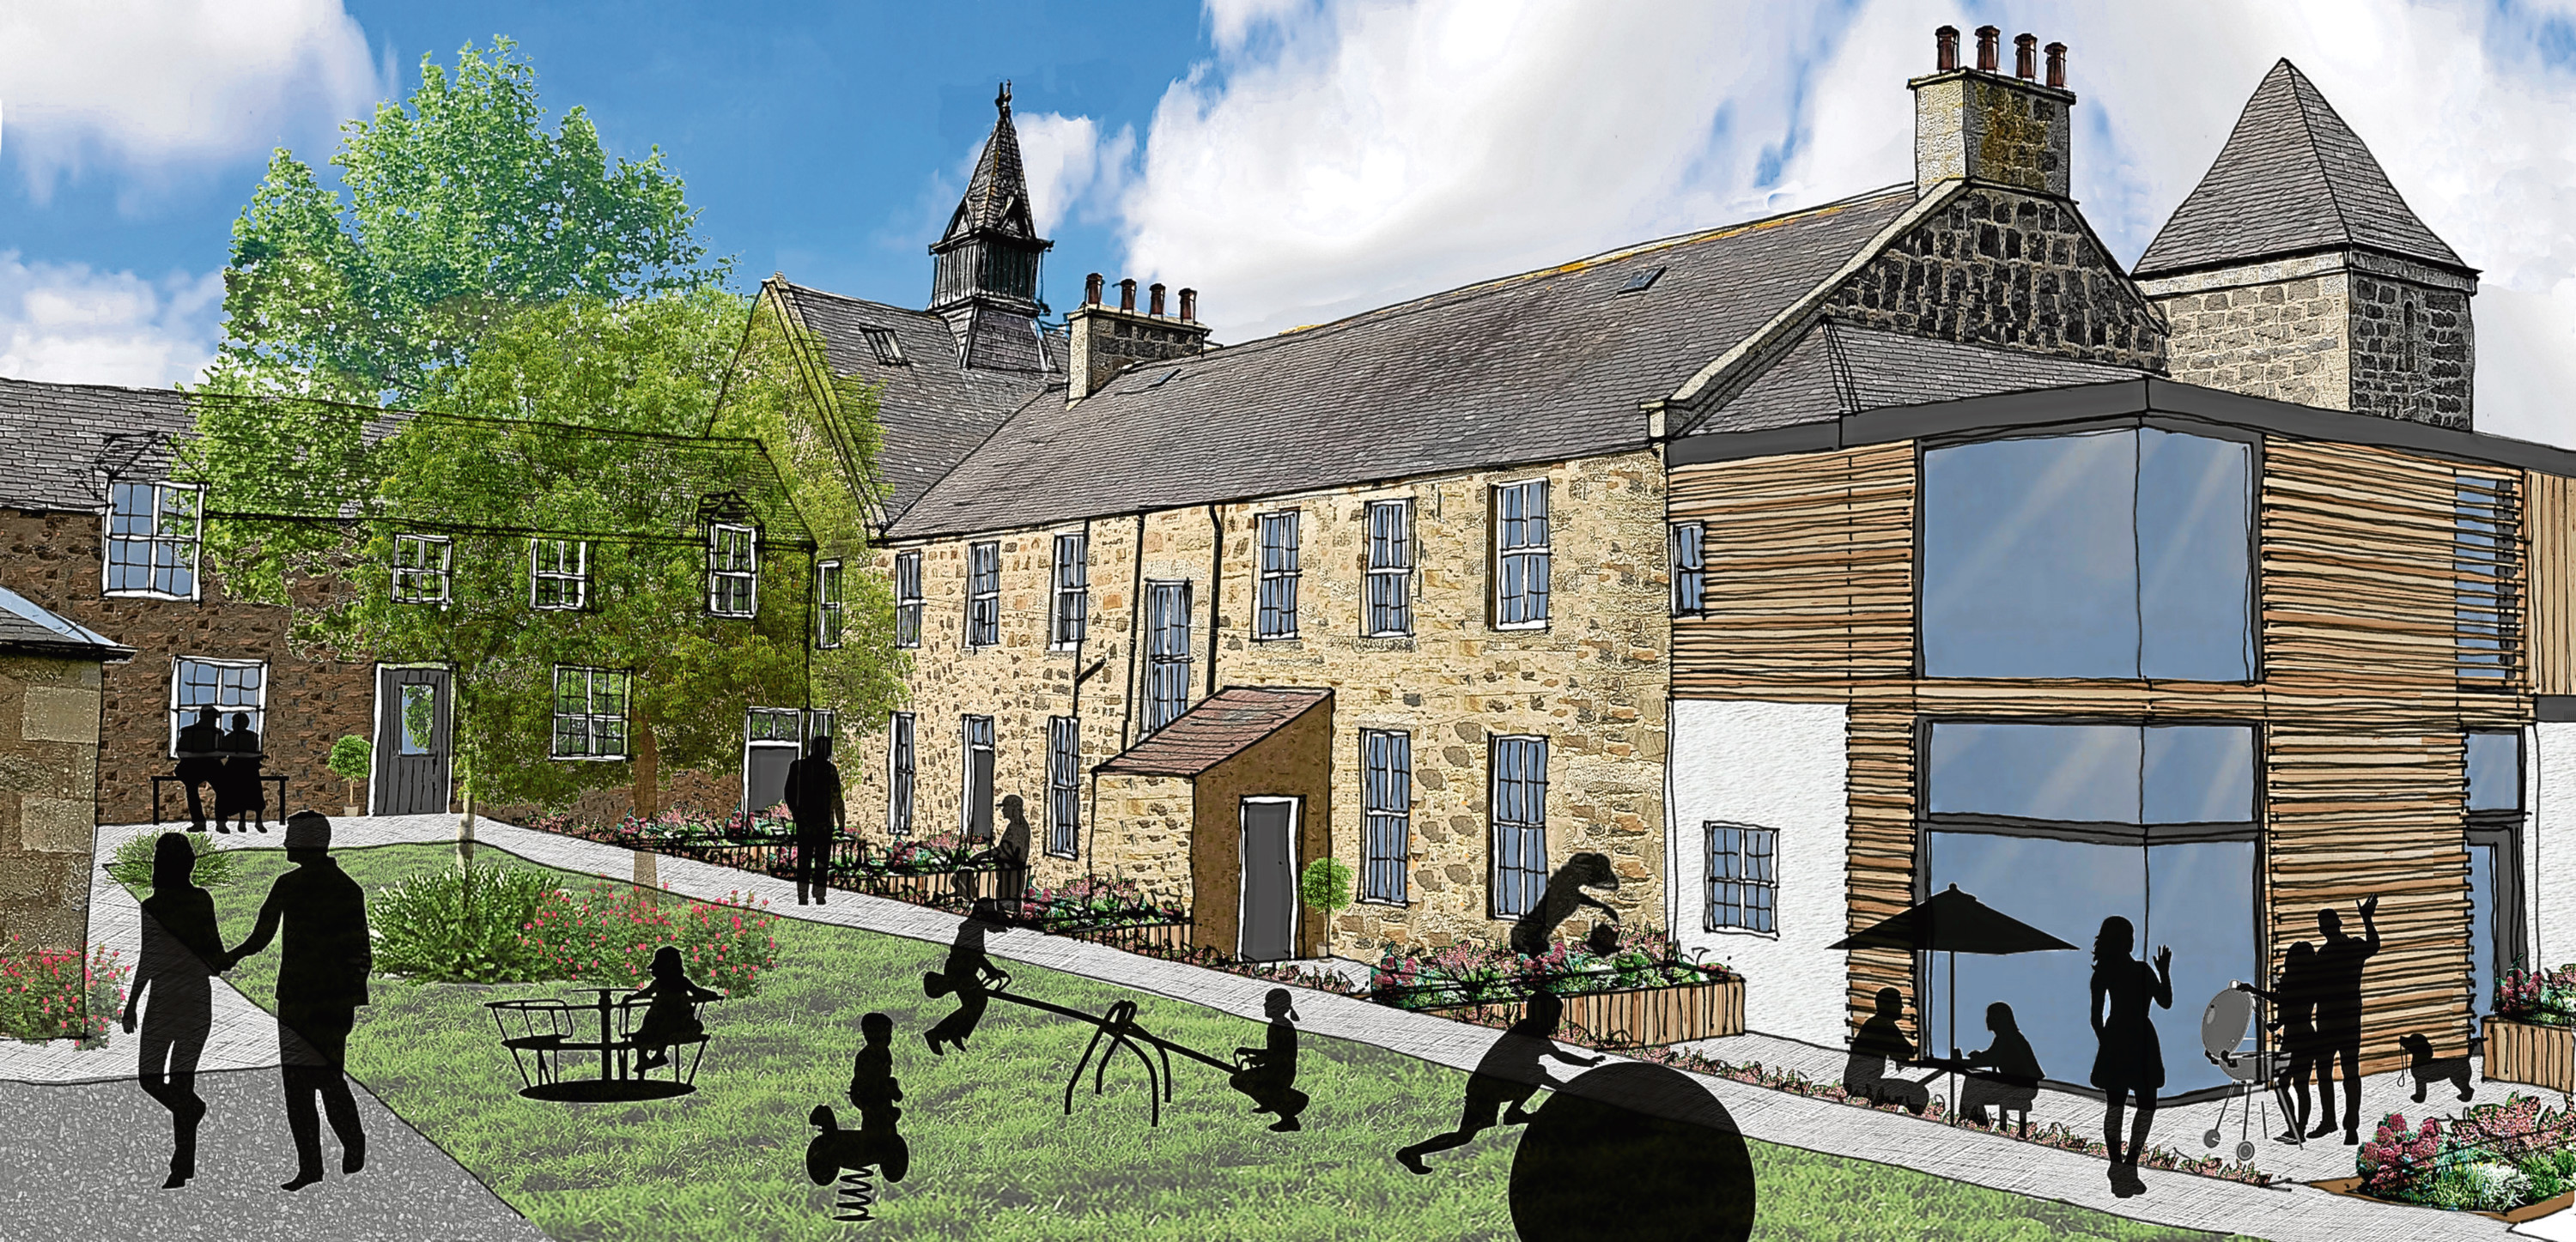 Pictures of how the development at Maud hospital could look if approved.